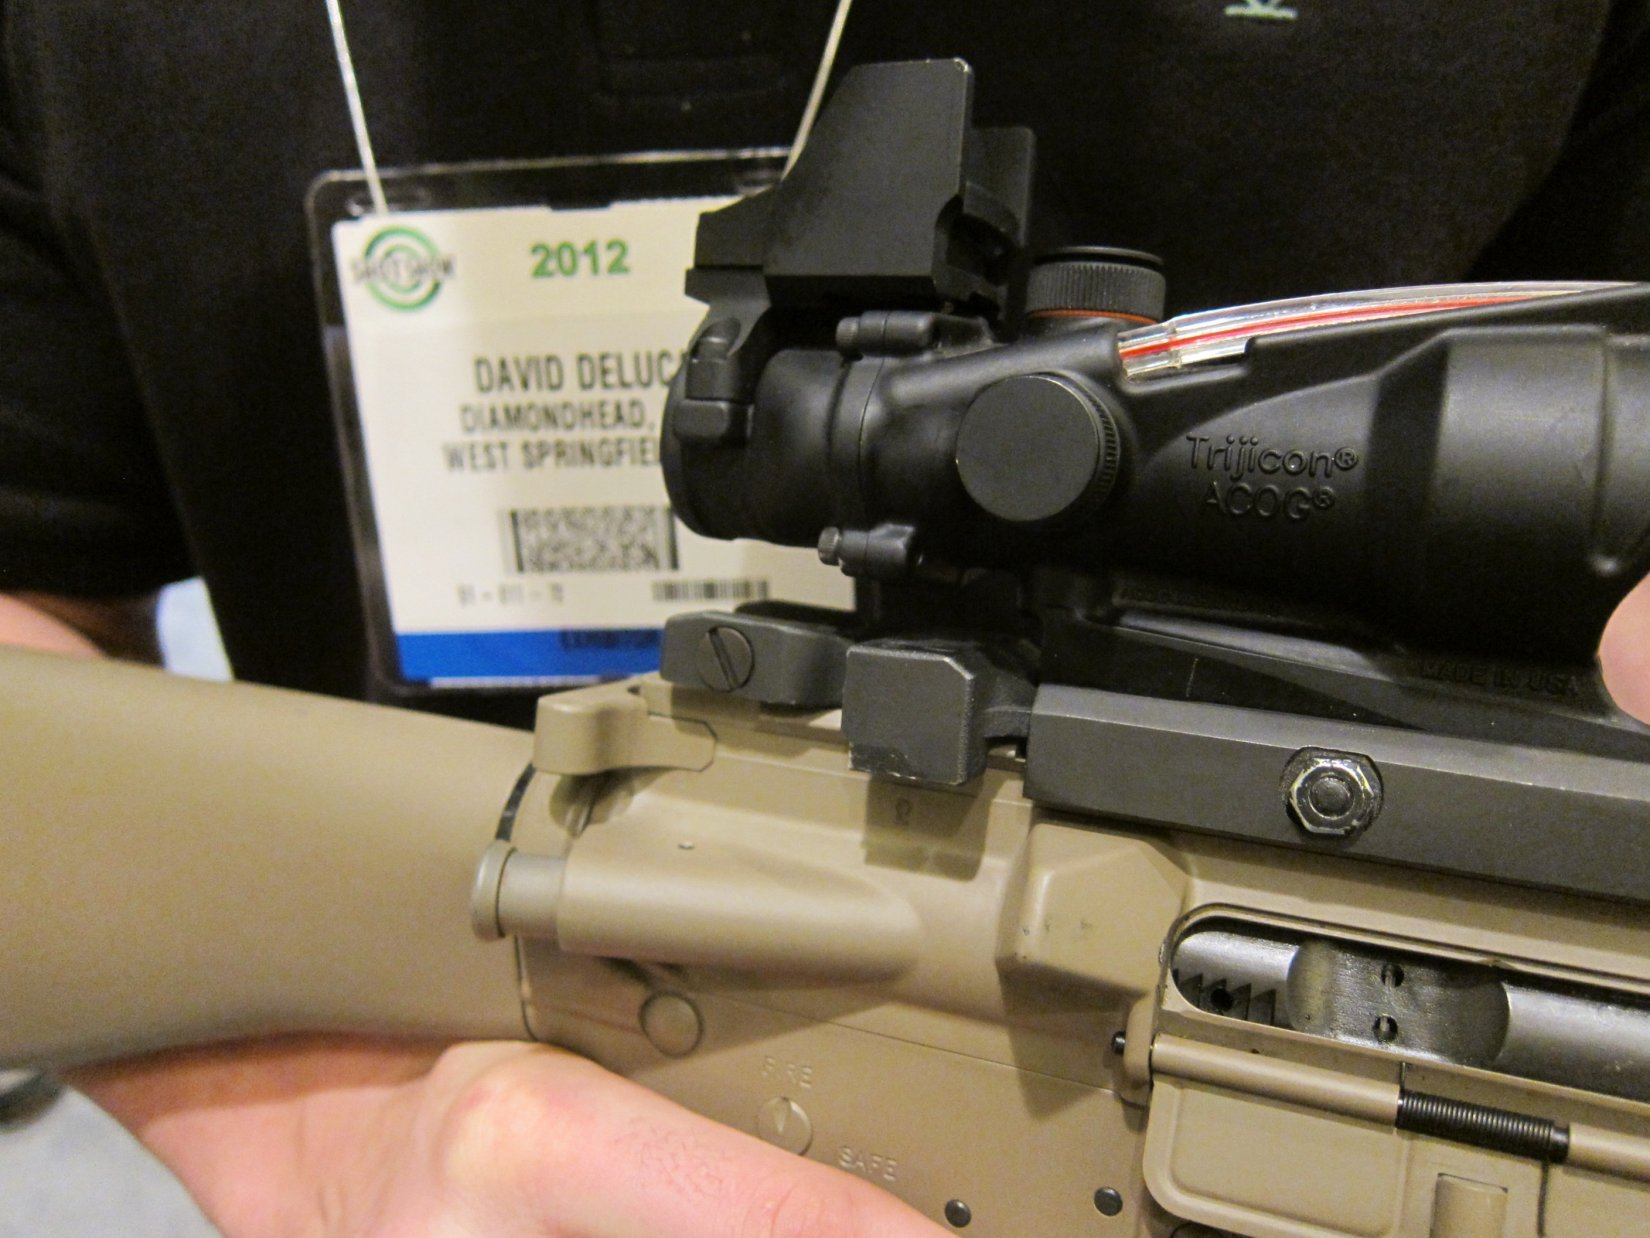 Diamondhead USA 45 Degree Offset Flip Sights BUIS Back Up Iron Sights for Tactical AR 15 Rifle Carbine SBR Sub Carbines SHOT Show 2012 DefenseReview.com DR 4 Diamondhead USA 45 Degree Offset Flip Sights/BUIS (Back Up Iron Sights) for Tactical AR 15 Rifle/Carbine/SBR/Sub Carbines